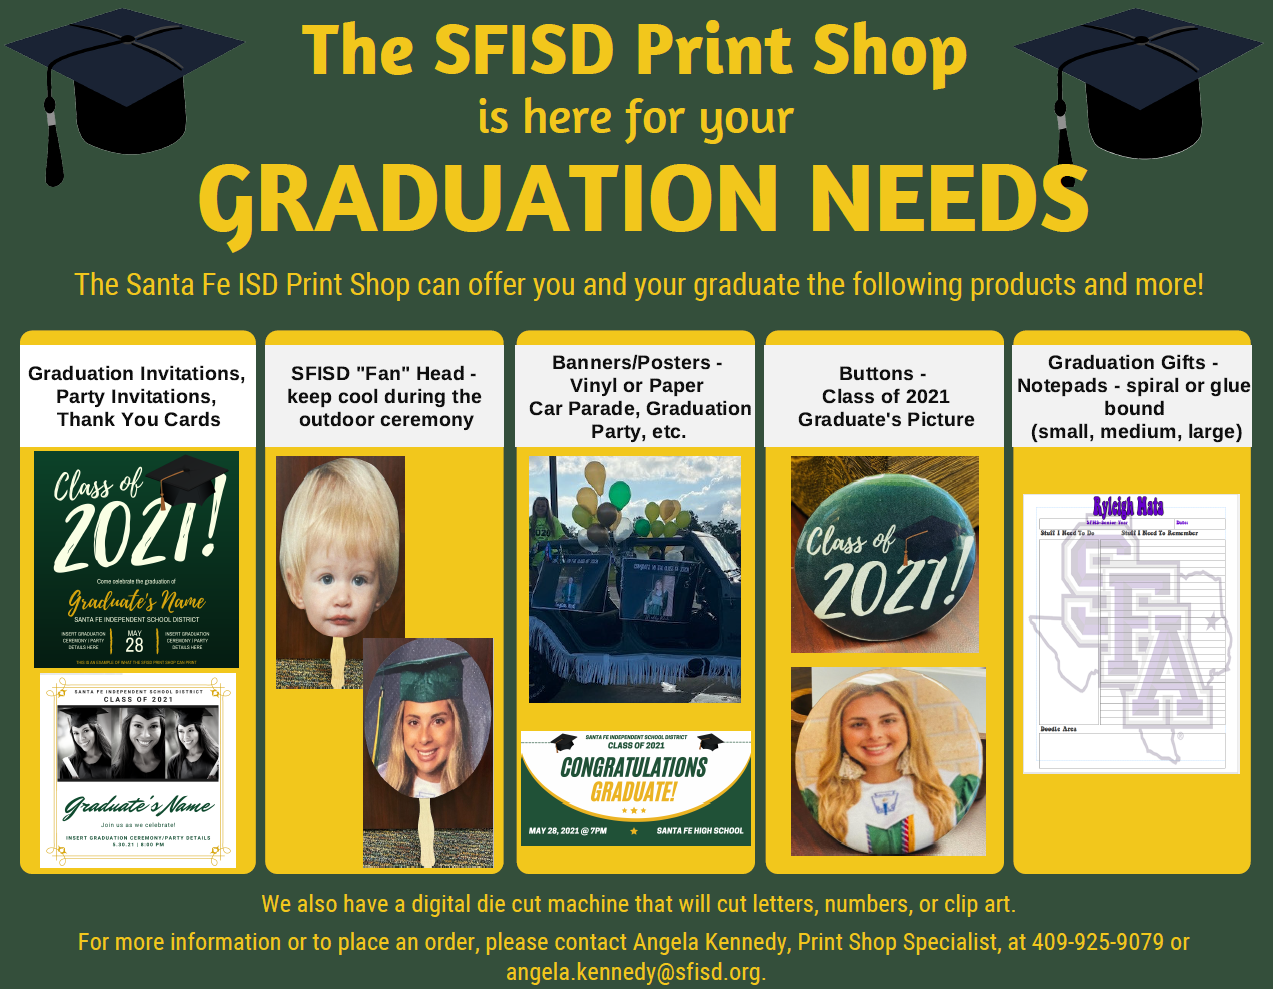 The SFISD Print Shop is here for your Graduation needs